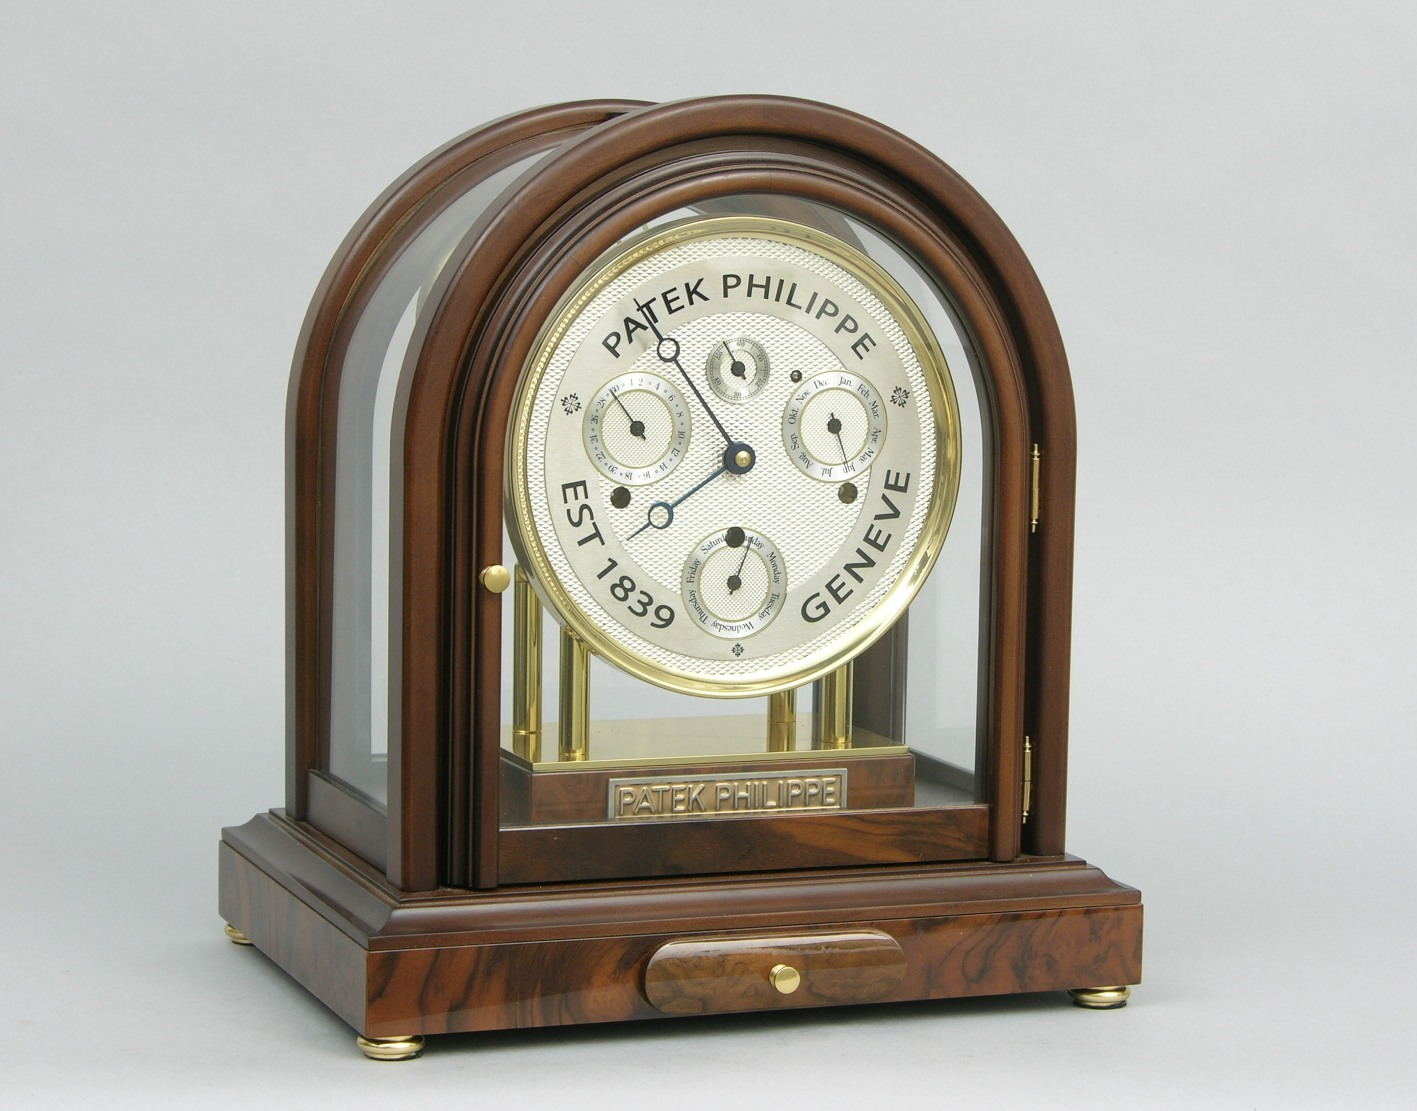 A Patek Philippe Annual Calendar Repeater Showroom Display